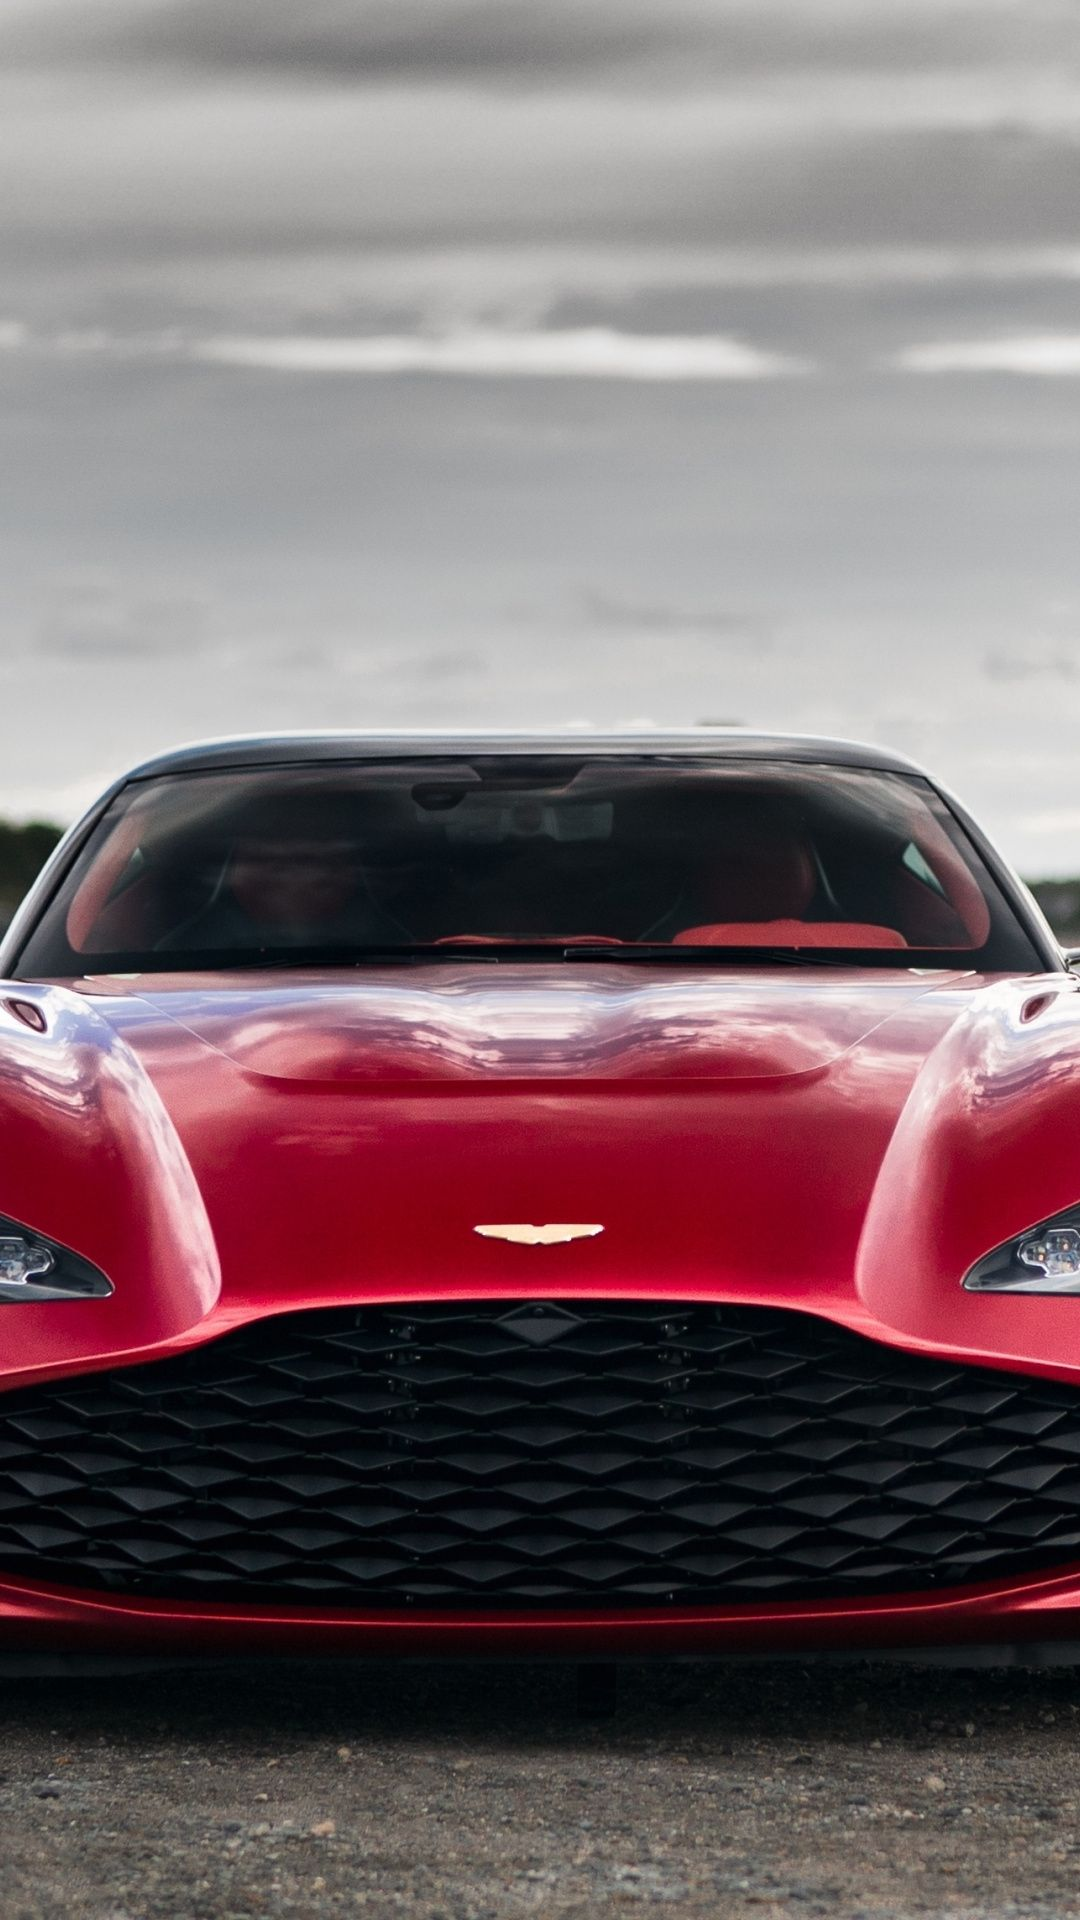 1080x1920 Red Car 2019 Aston Martin Dbs Gt Agato Front View Wallpaper Aston Martin Dbs Red Car Aston Martin